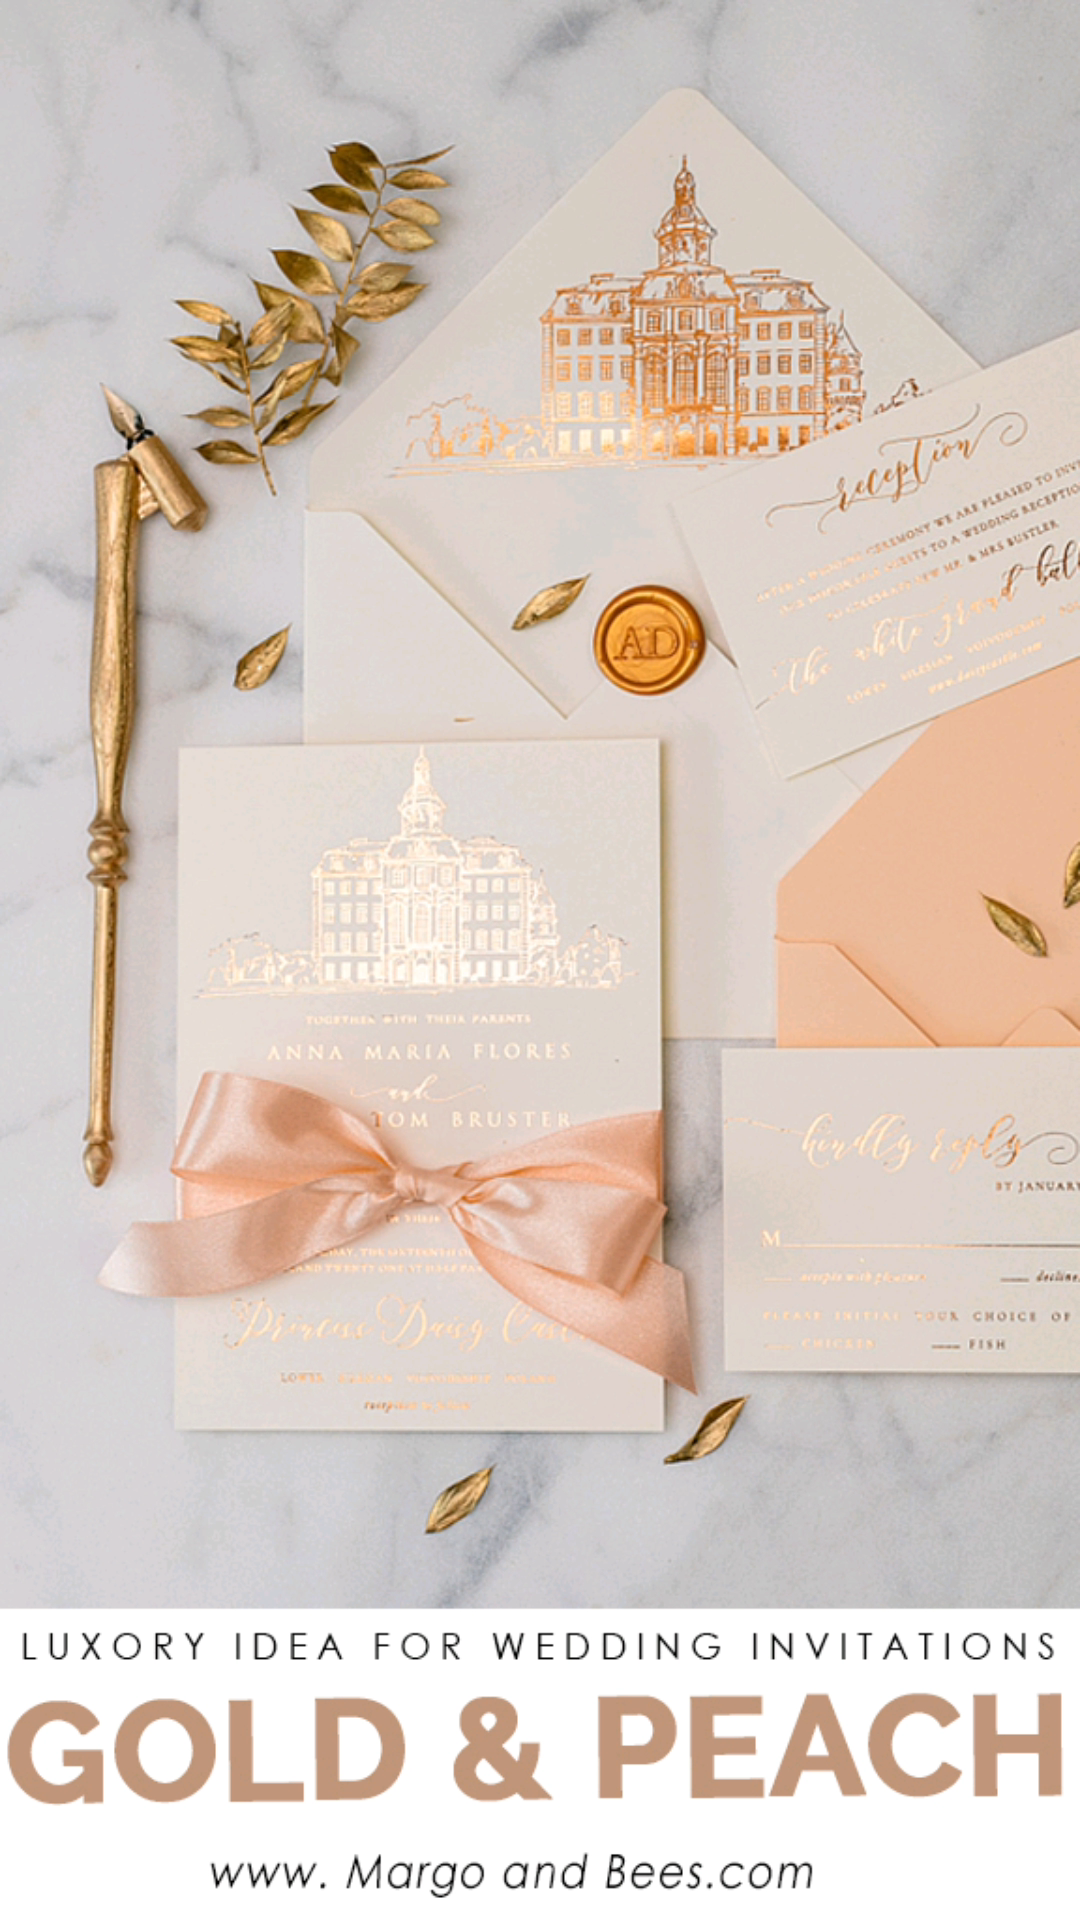 Gold and peach wedding invitaitons with venue Modern idea for